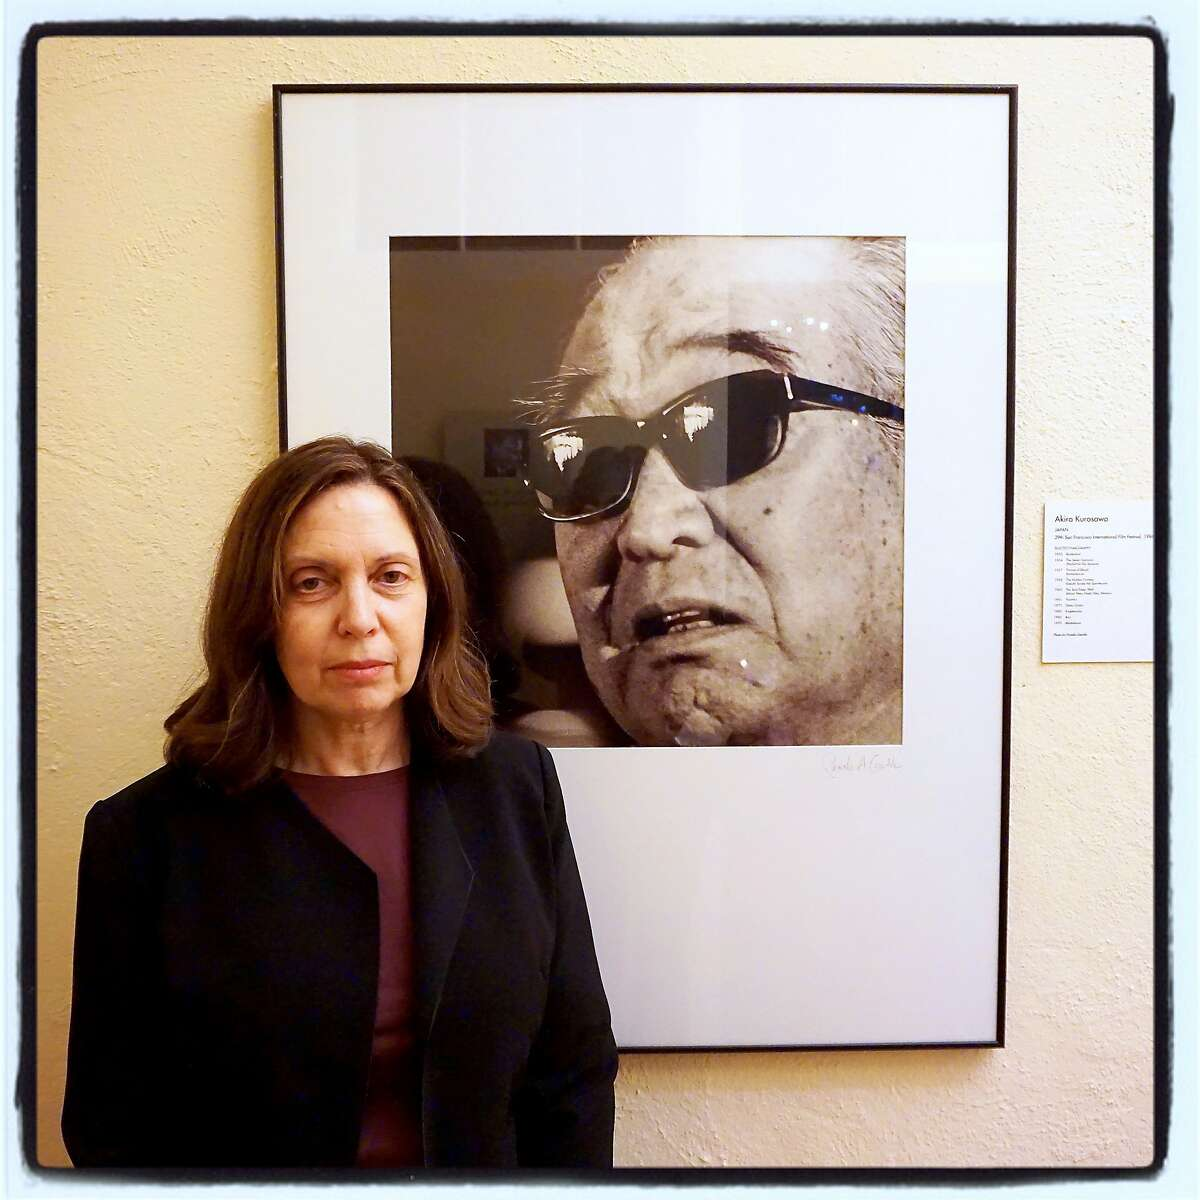 SF Film Society photographer Pamela Gentile with her first festival photograph at the SFFS HQ in The Presidio. Nov 2015